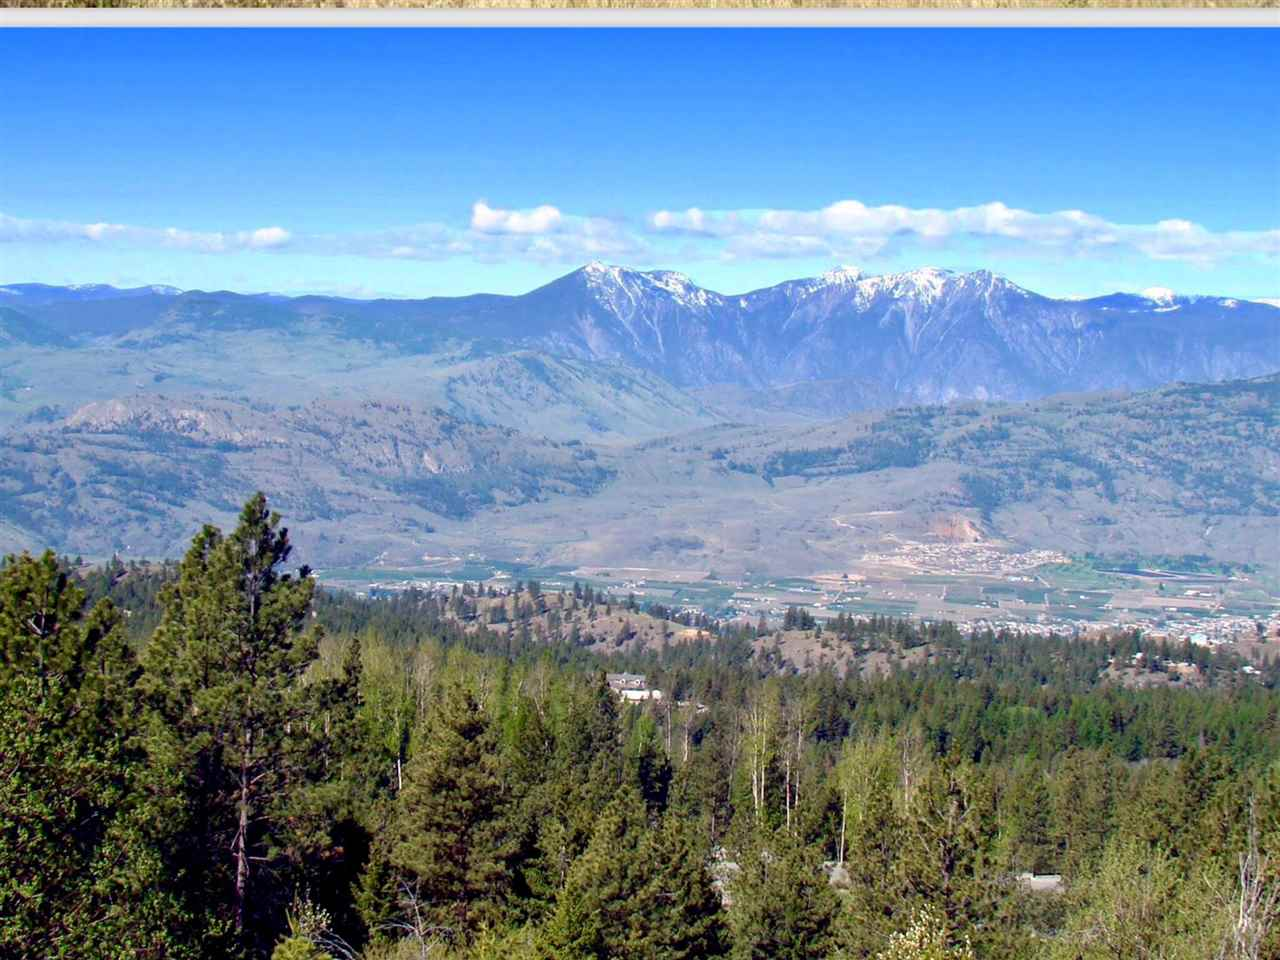 Beautiful mountain and lake views from this very private lot. Large usable building site with paved driveway. Power utility vault on the lot, hookup with Fortis under $1000. Drilled well with ample water flow of over 20 GPM. Excellent value for a lot of this caliber. Please request permission to walk this private property. Lot measurements taken from Land Title Office in Kamloops - Landcor documents MLS®188416